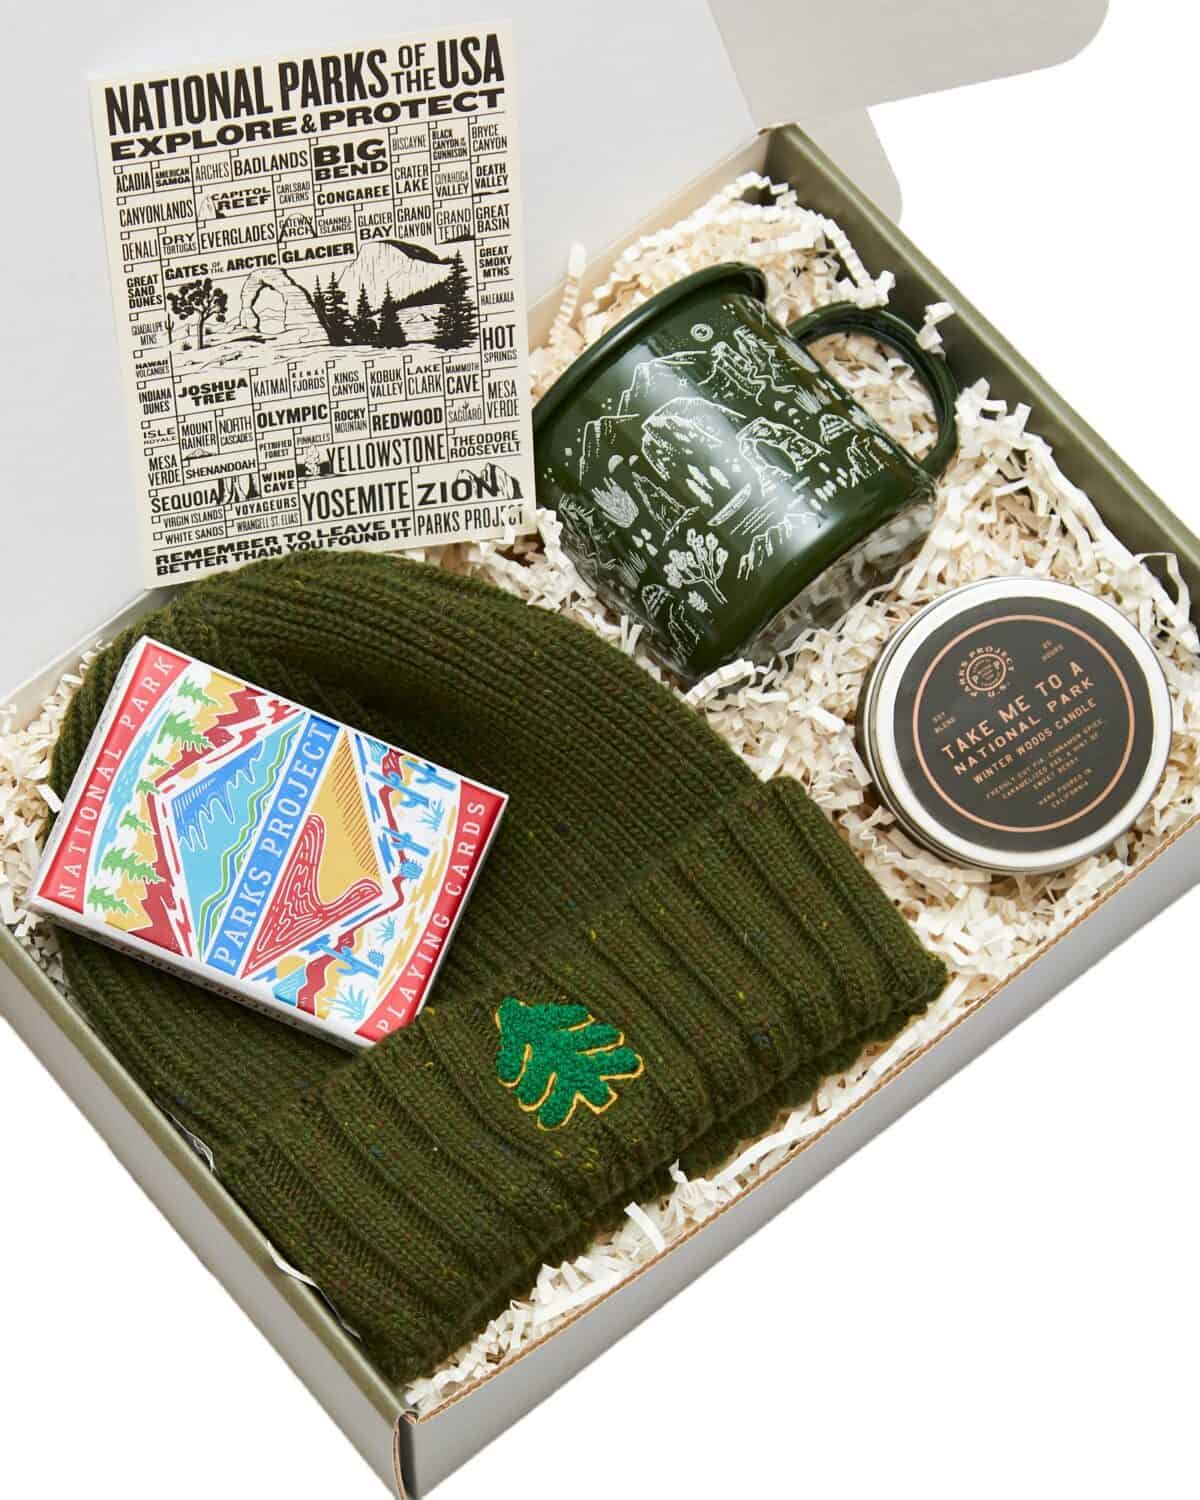 Take Me To The Woods Gift Box Set - The Parks Project